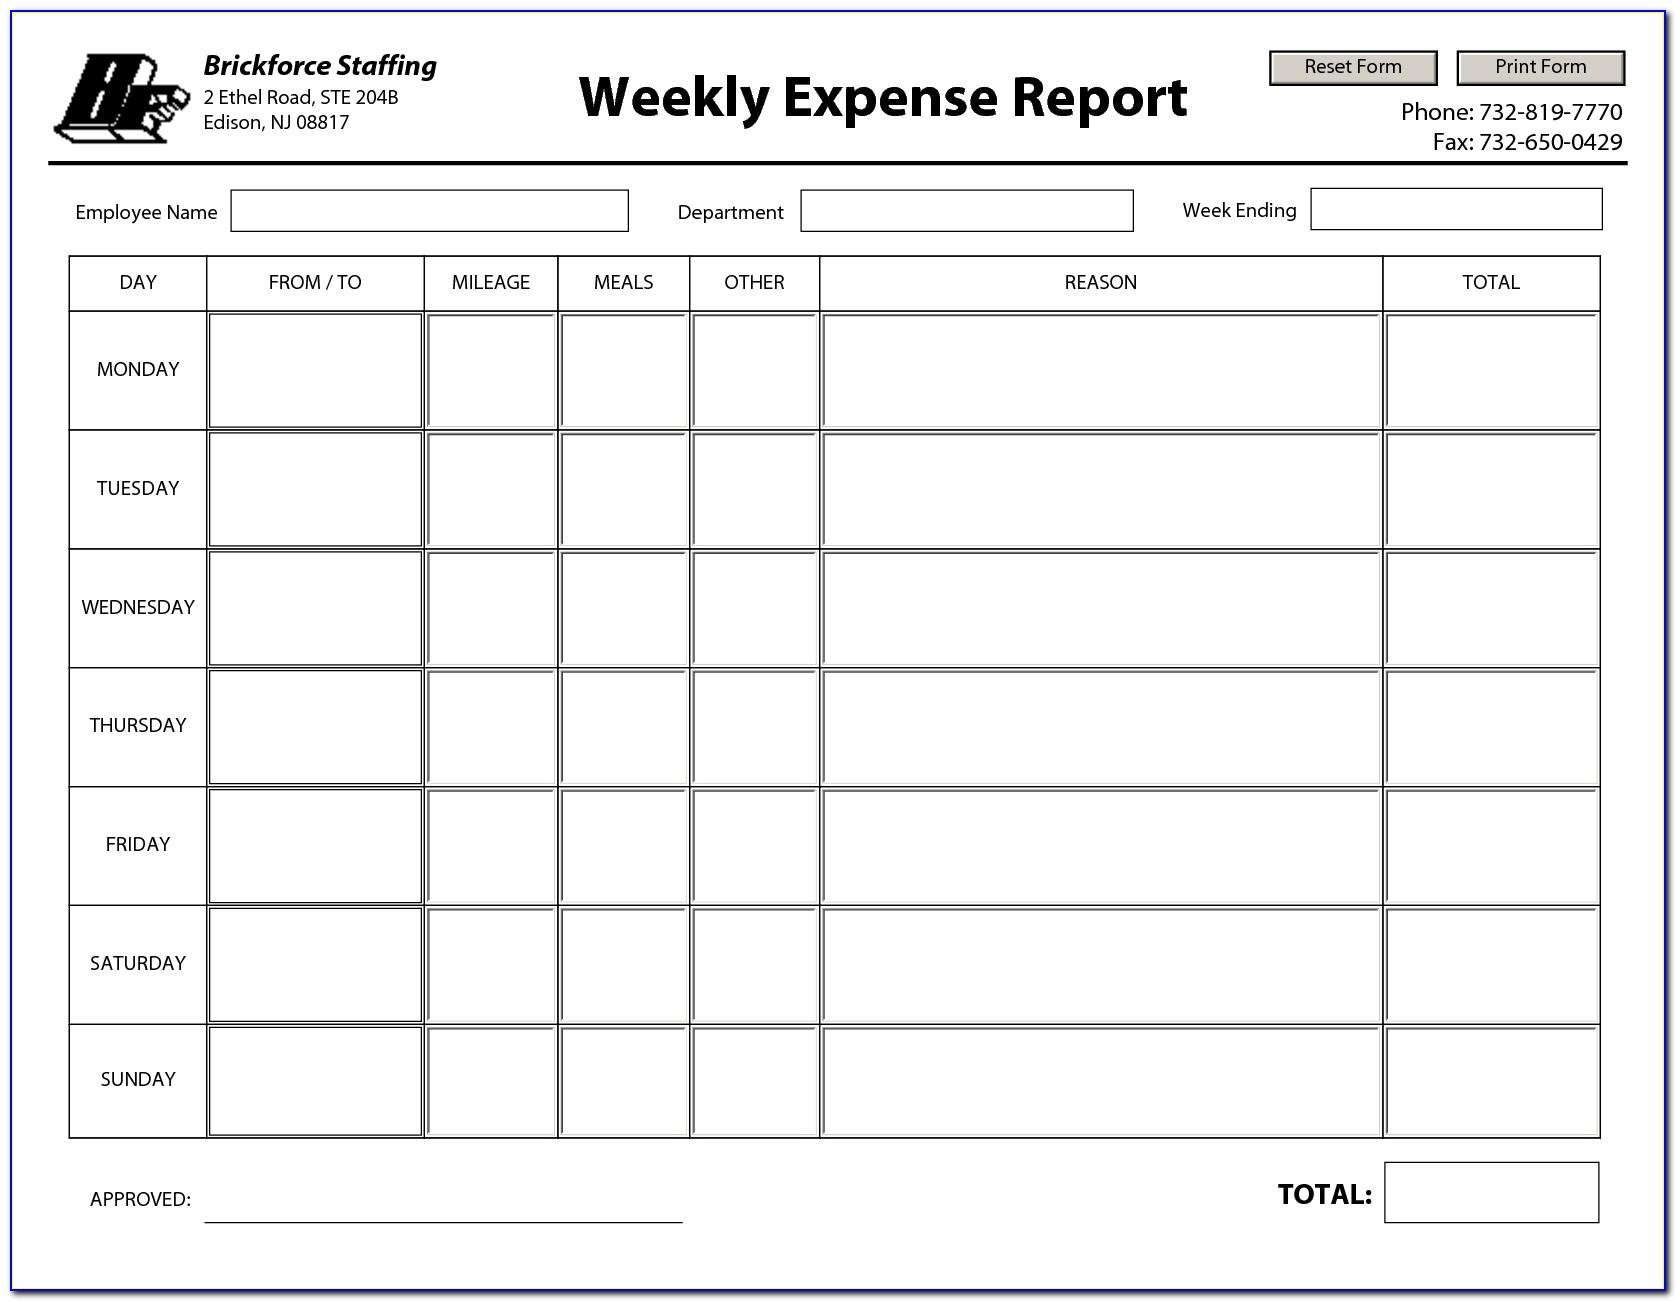 Weekly Expense Report Template Excel